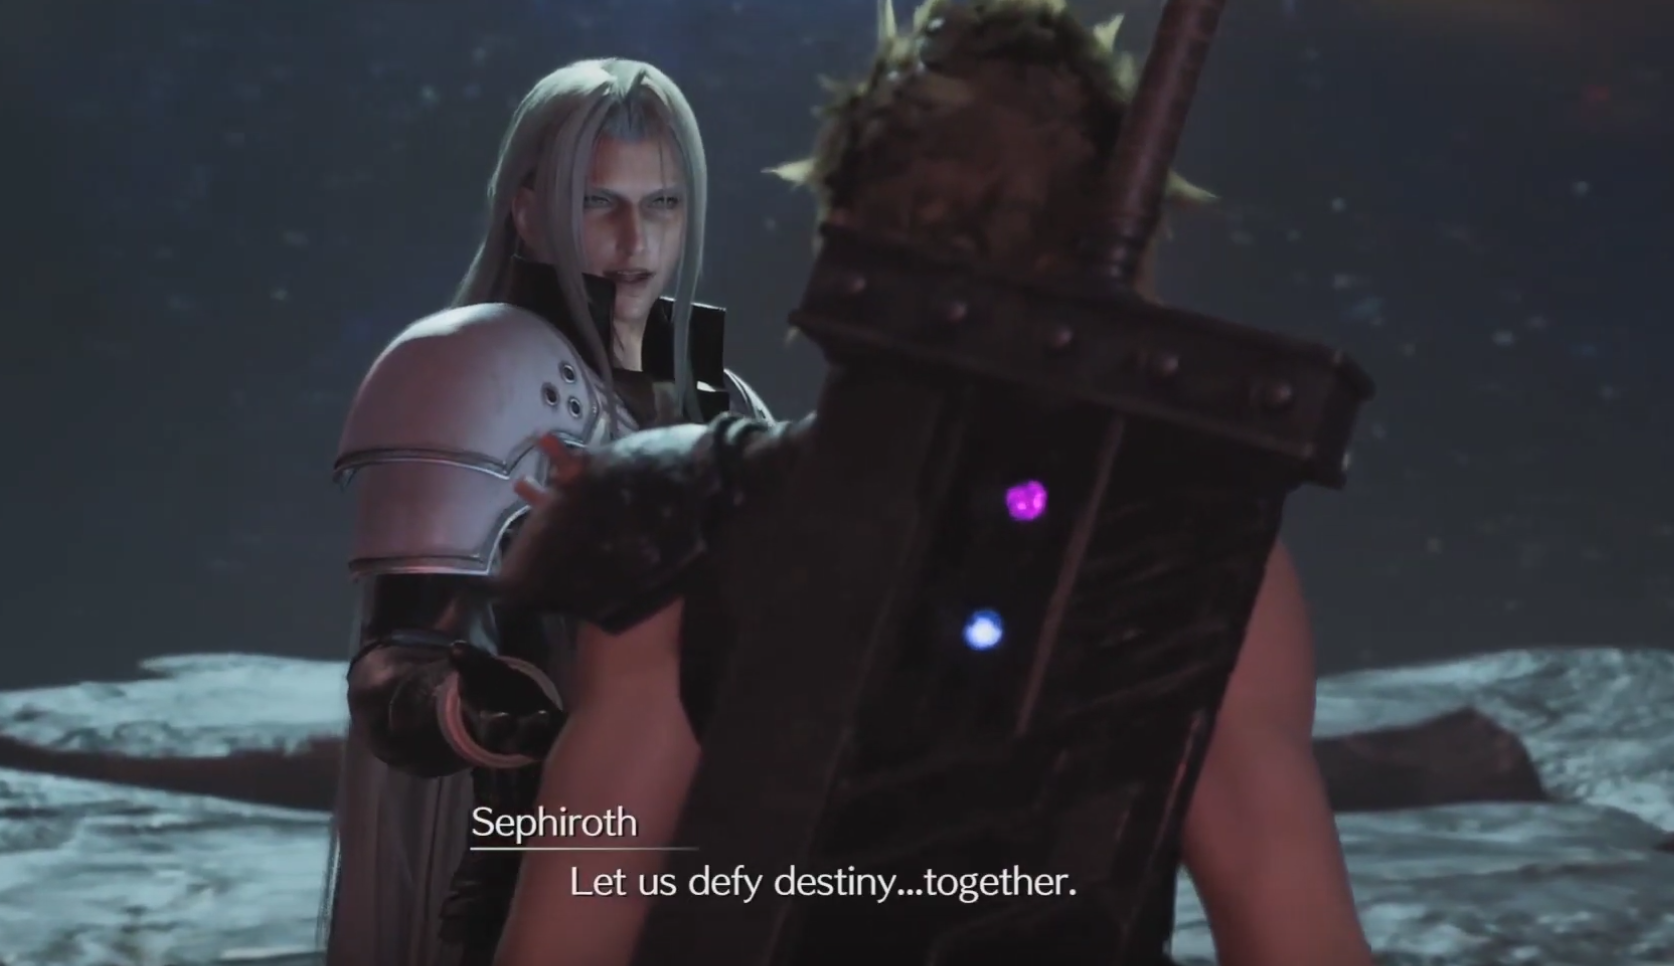 Sephiroth inviting Cloud to defy destiny with him at the Edge of Creation